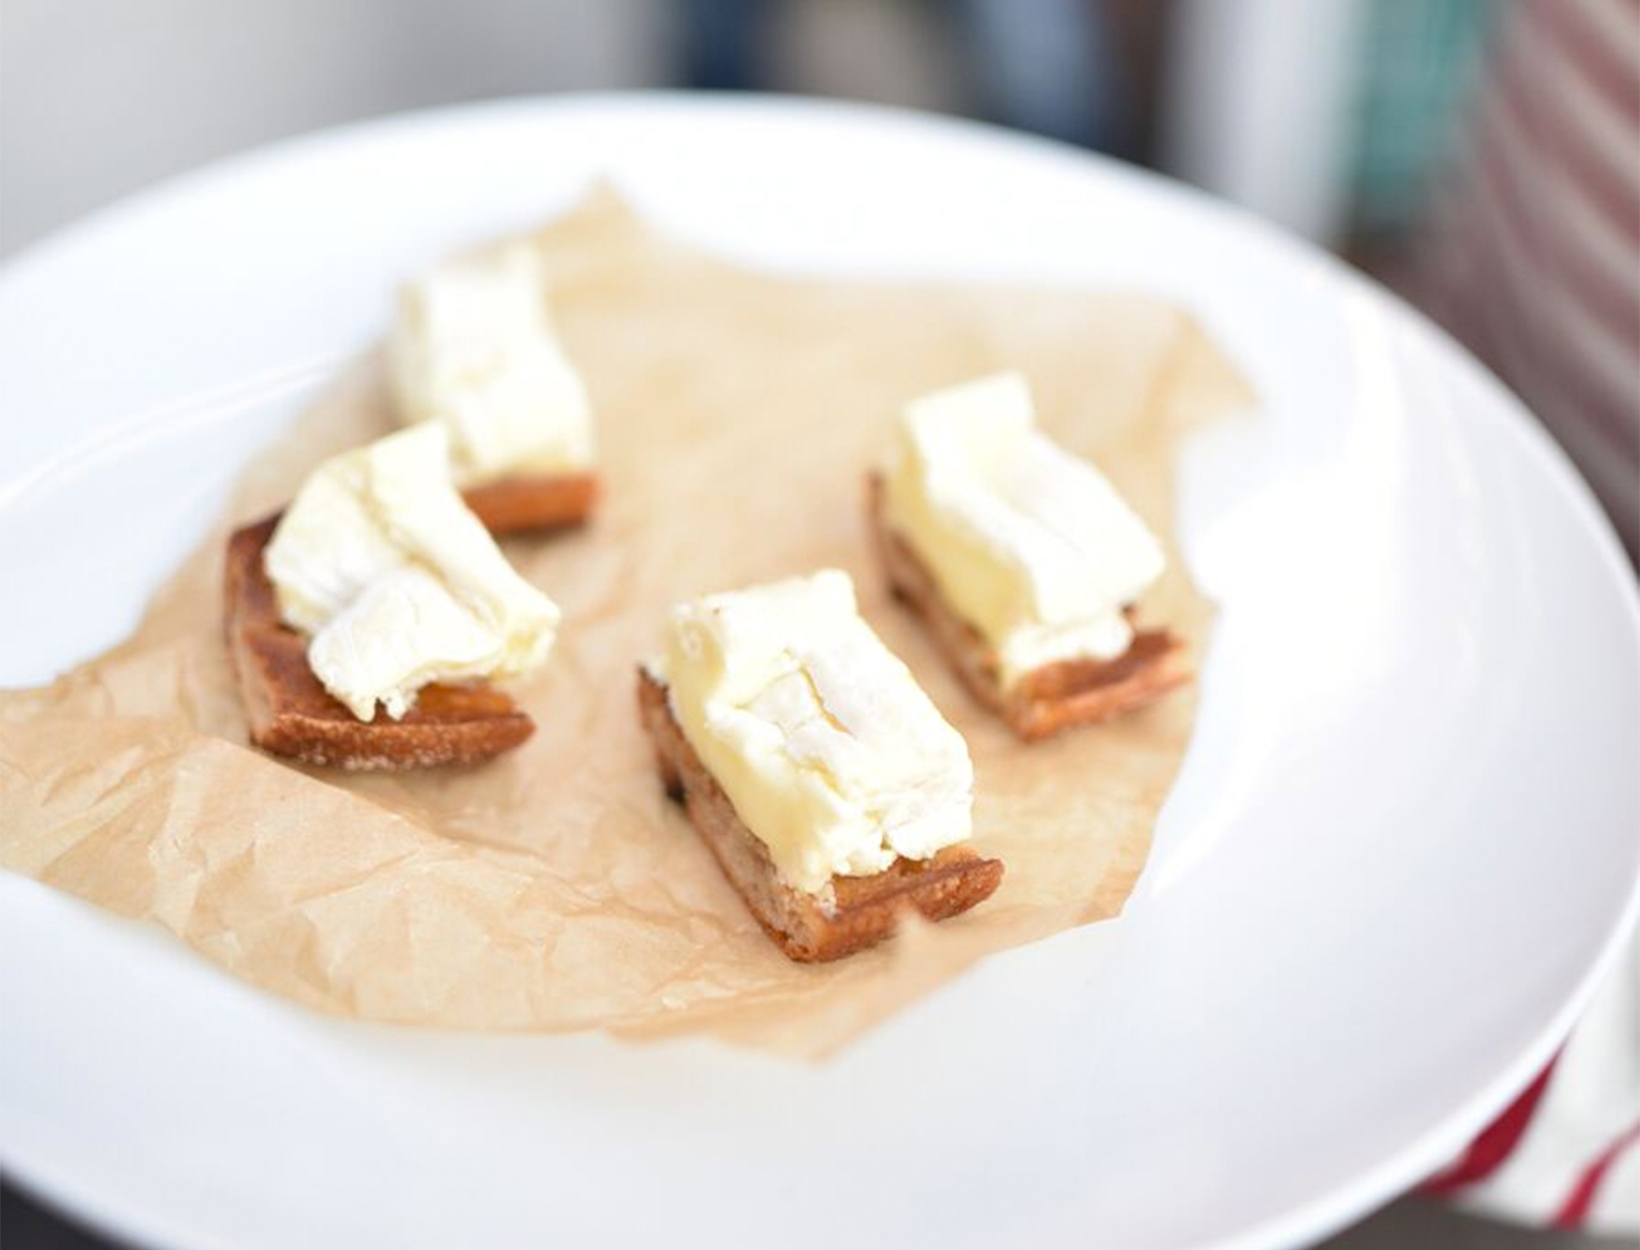 Toasted Baguette with d'Affinois and Bordier Butter